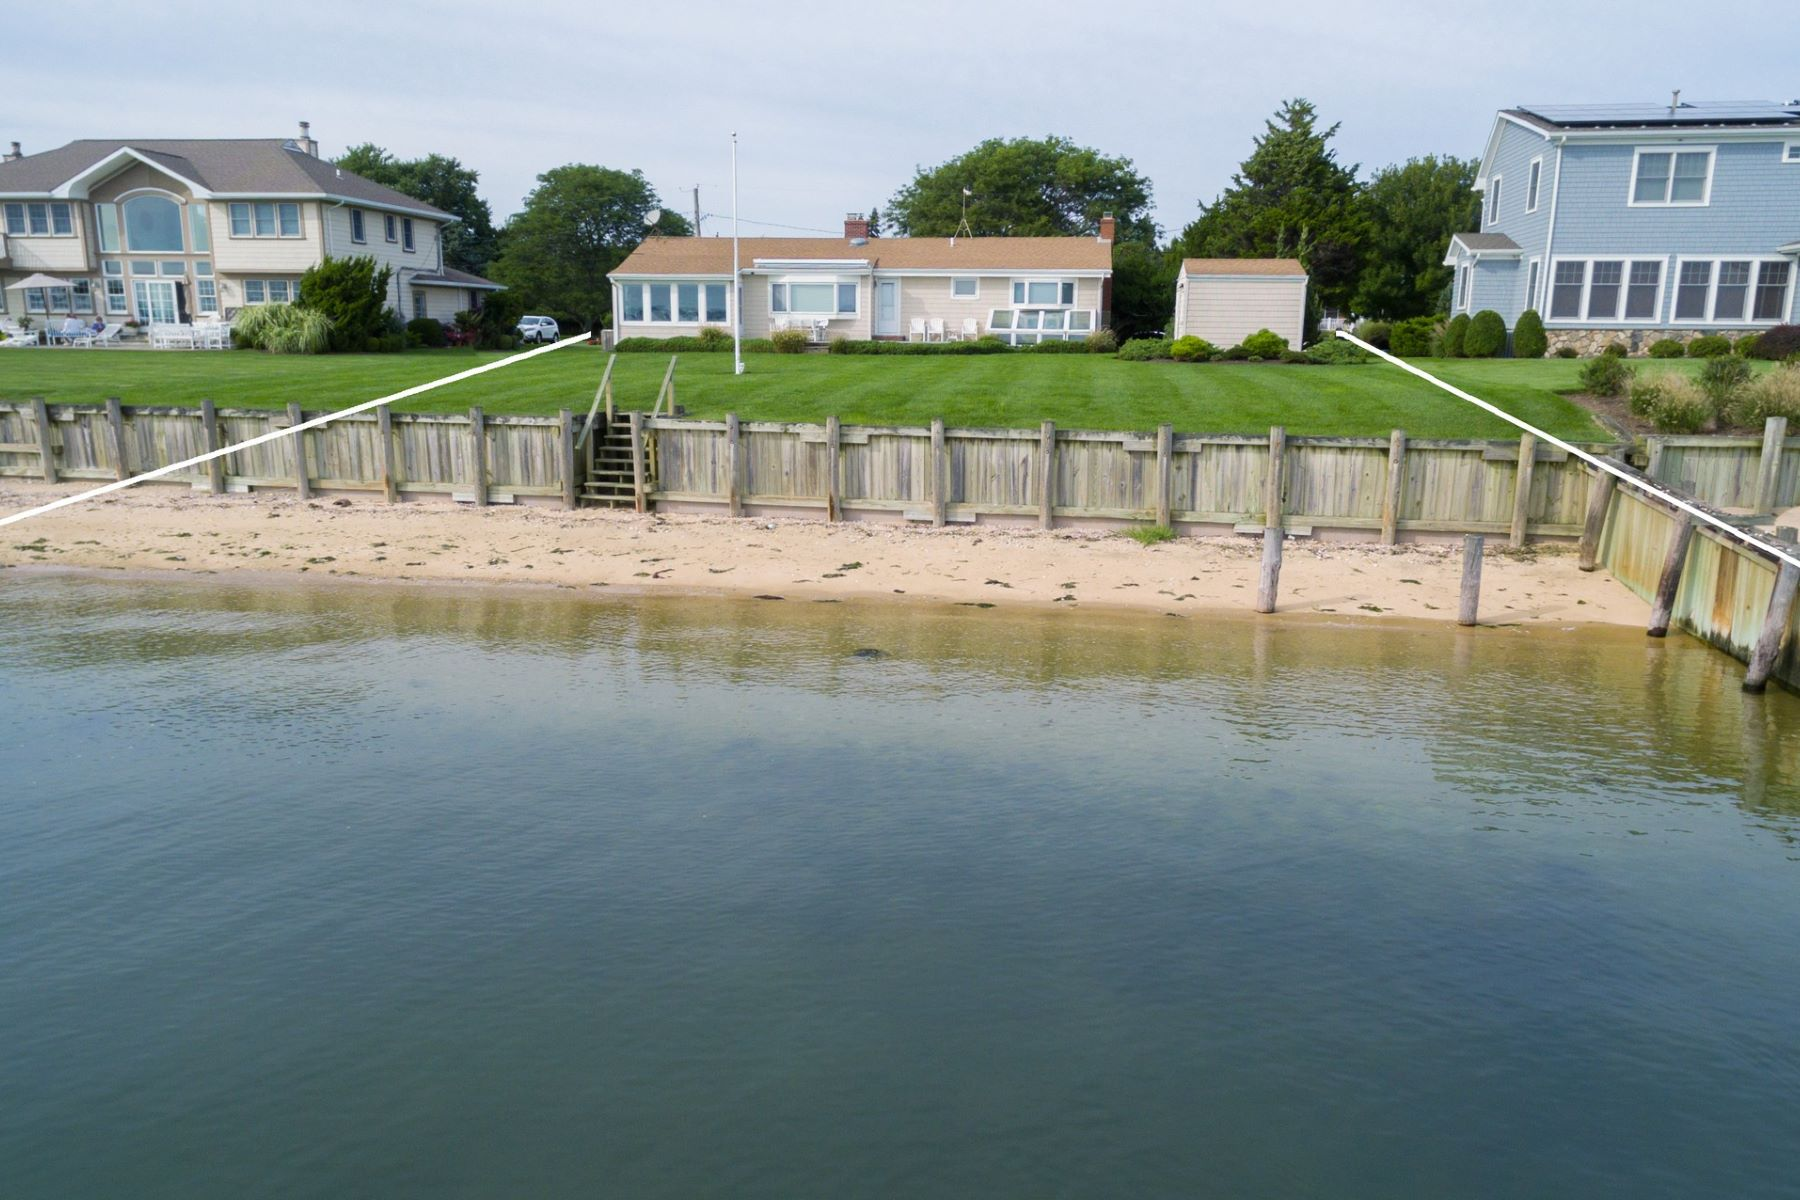 Single Family Homes for Active at Southold 435 Watersedge Way Southold, New York 11971 United States